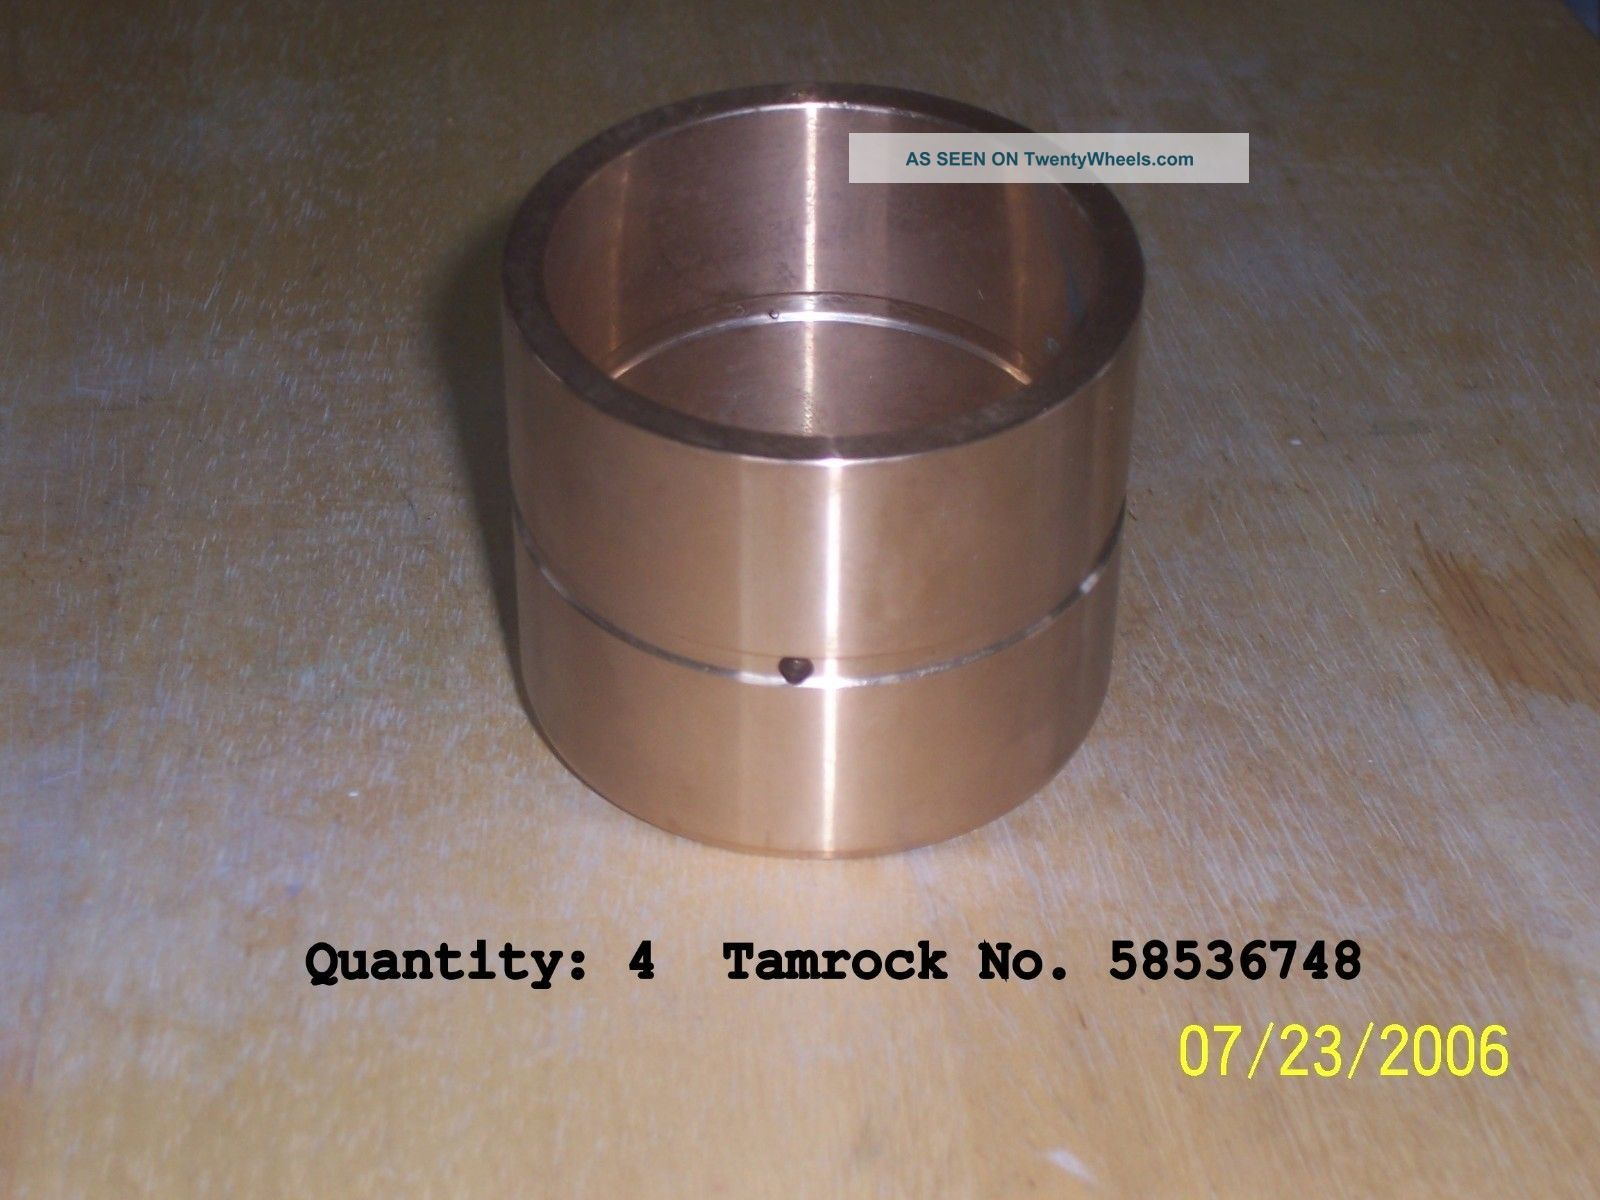 Skf And Tamrock Mining Equipment Spares Material Handling & Processing photo